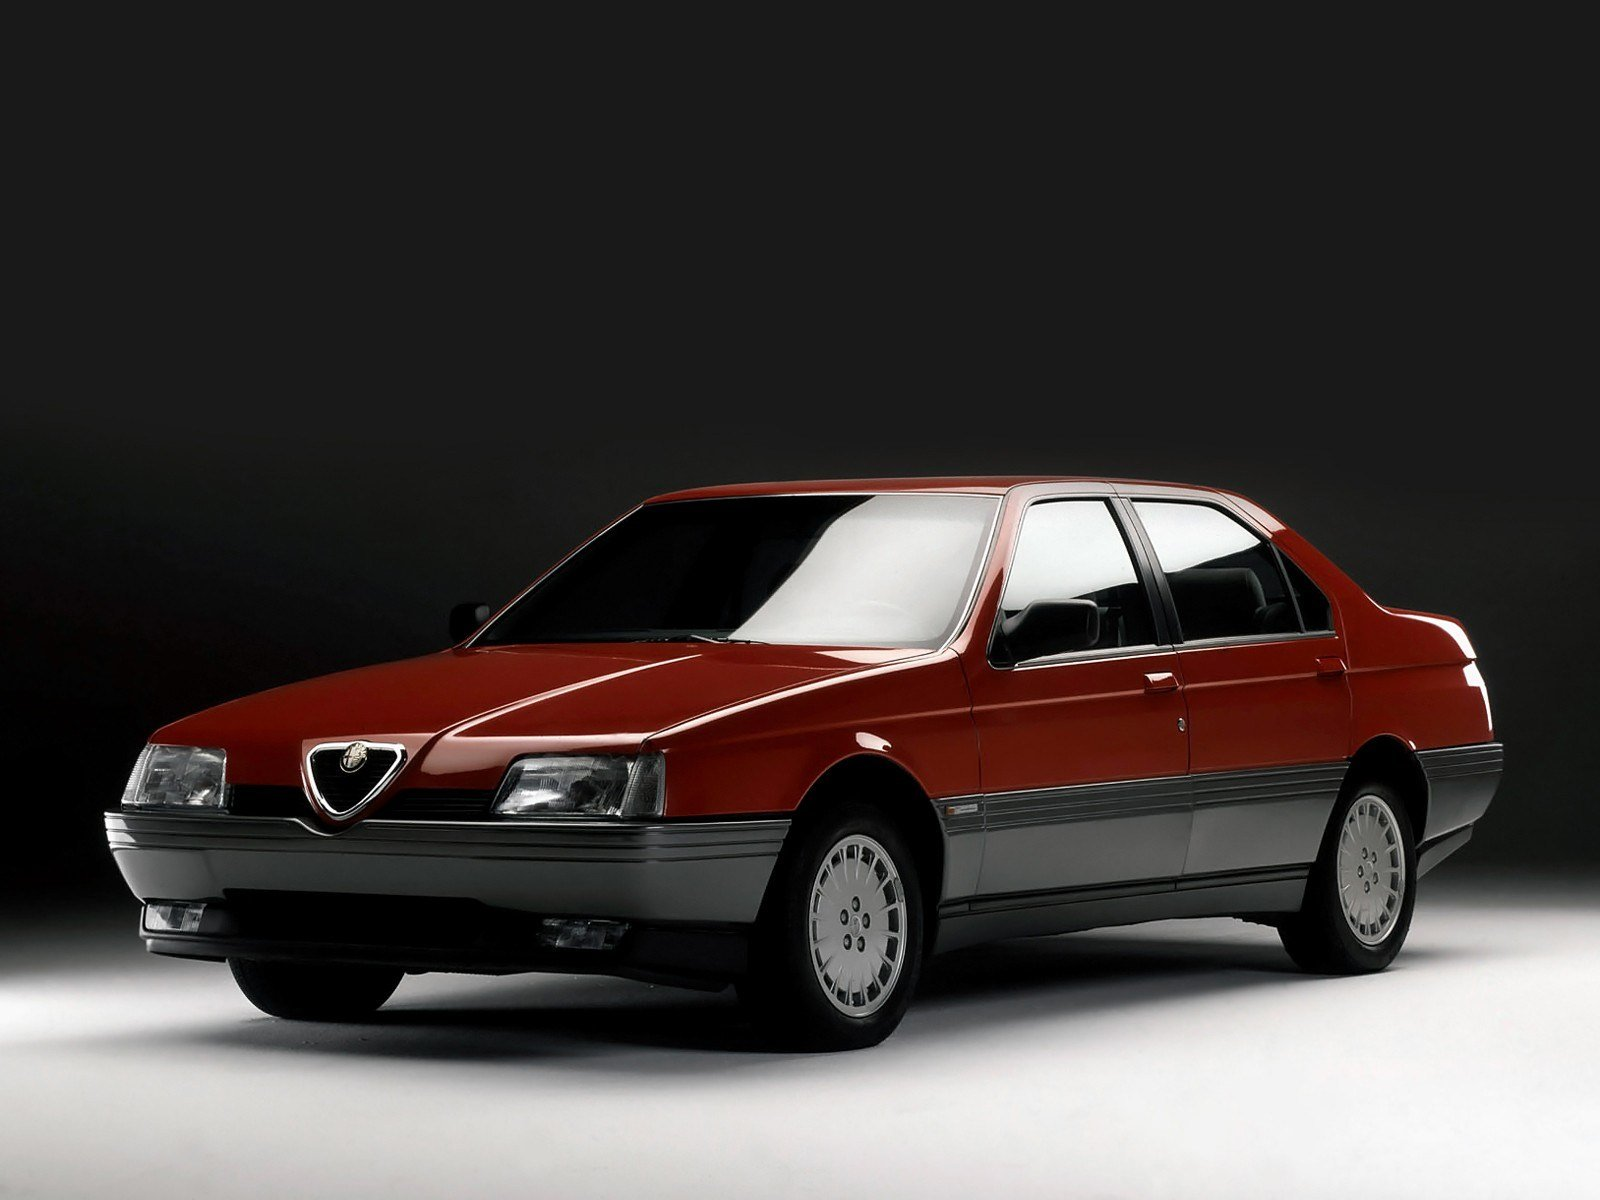 Latest Alfa Romeo 164 Specs 1988 1989 1990 1991 1992 1993 Free Download